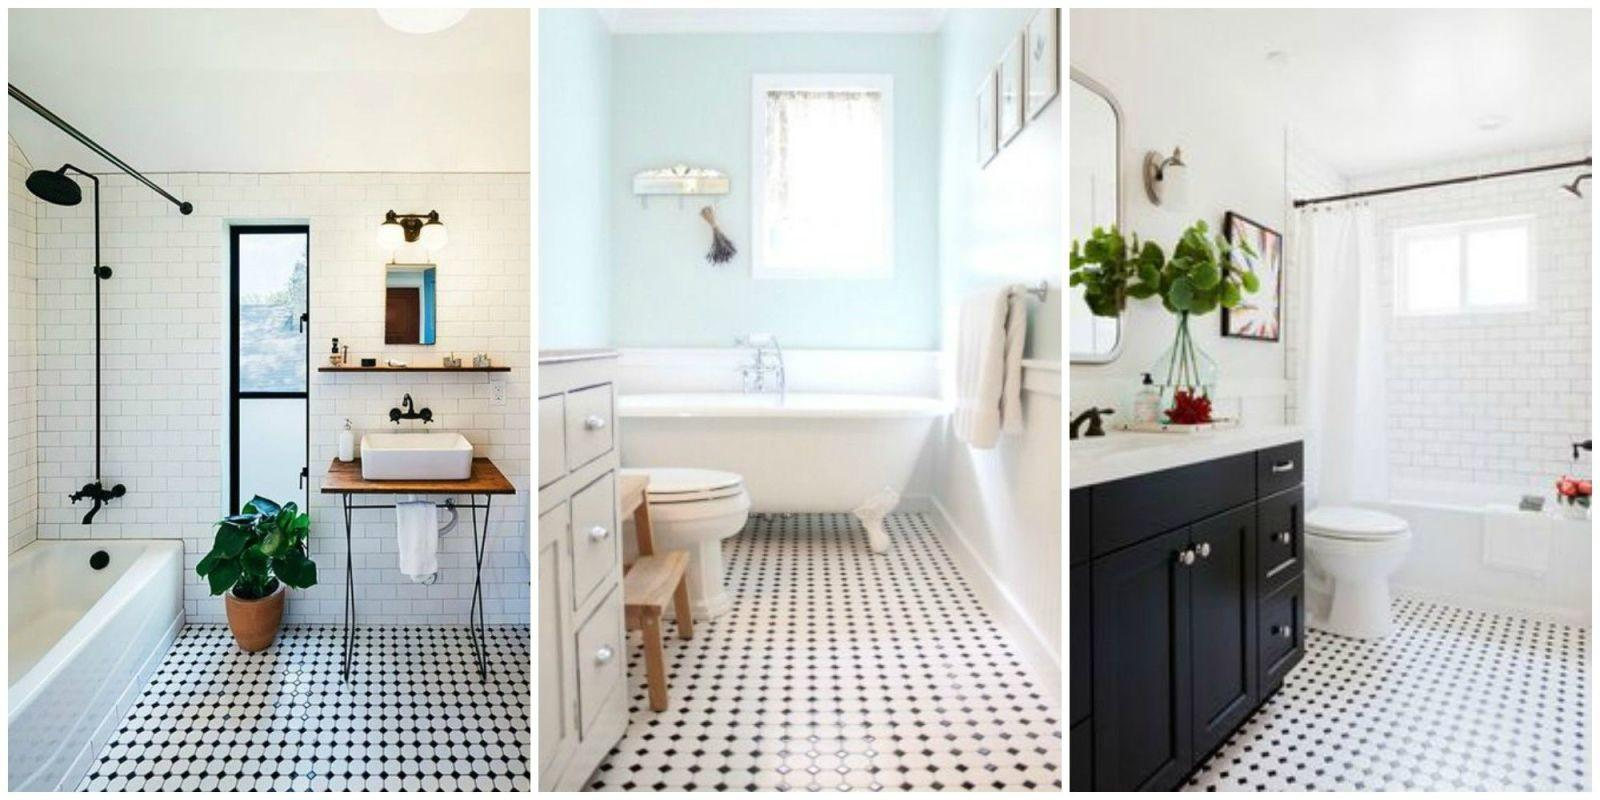 Classic Black White Tiled Bathroom Floors Making